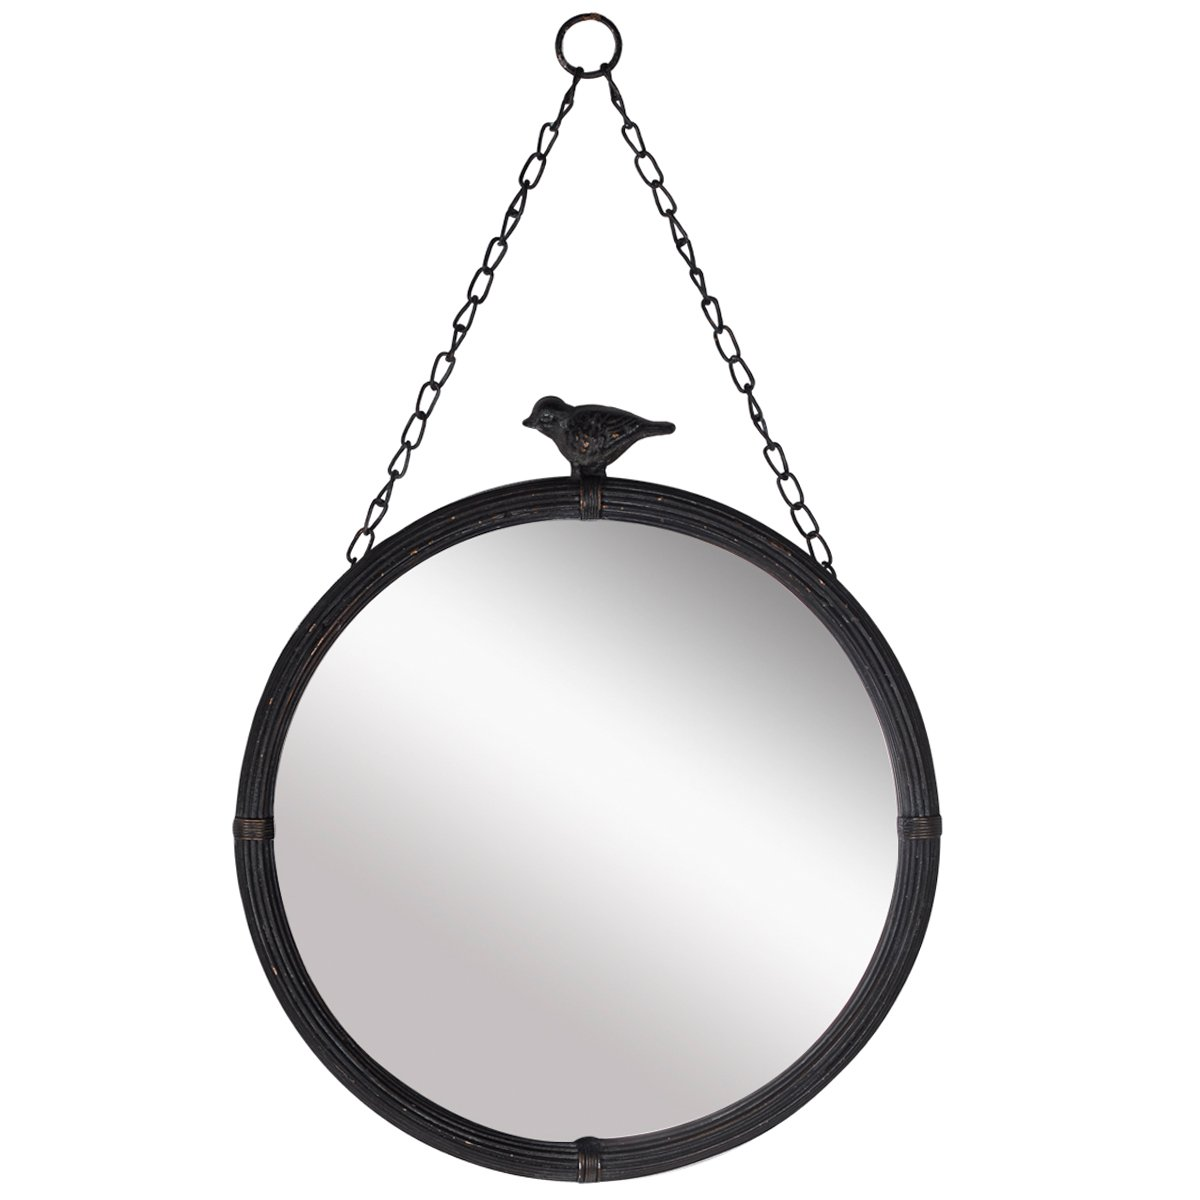 NIKKY HOME 11.25'' Vintage Round Metal Framed Wall Mounted Mirror with Bird, in Matt Black